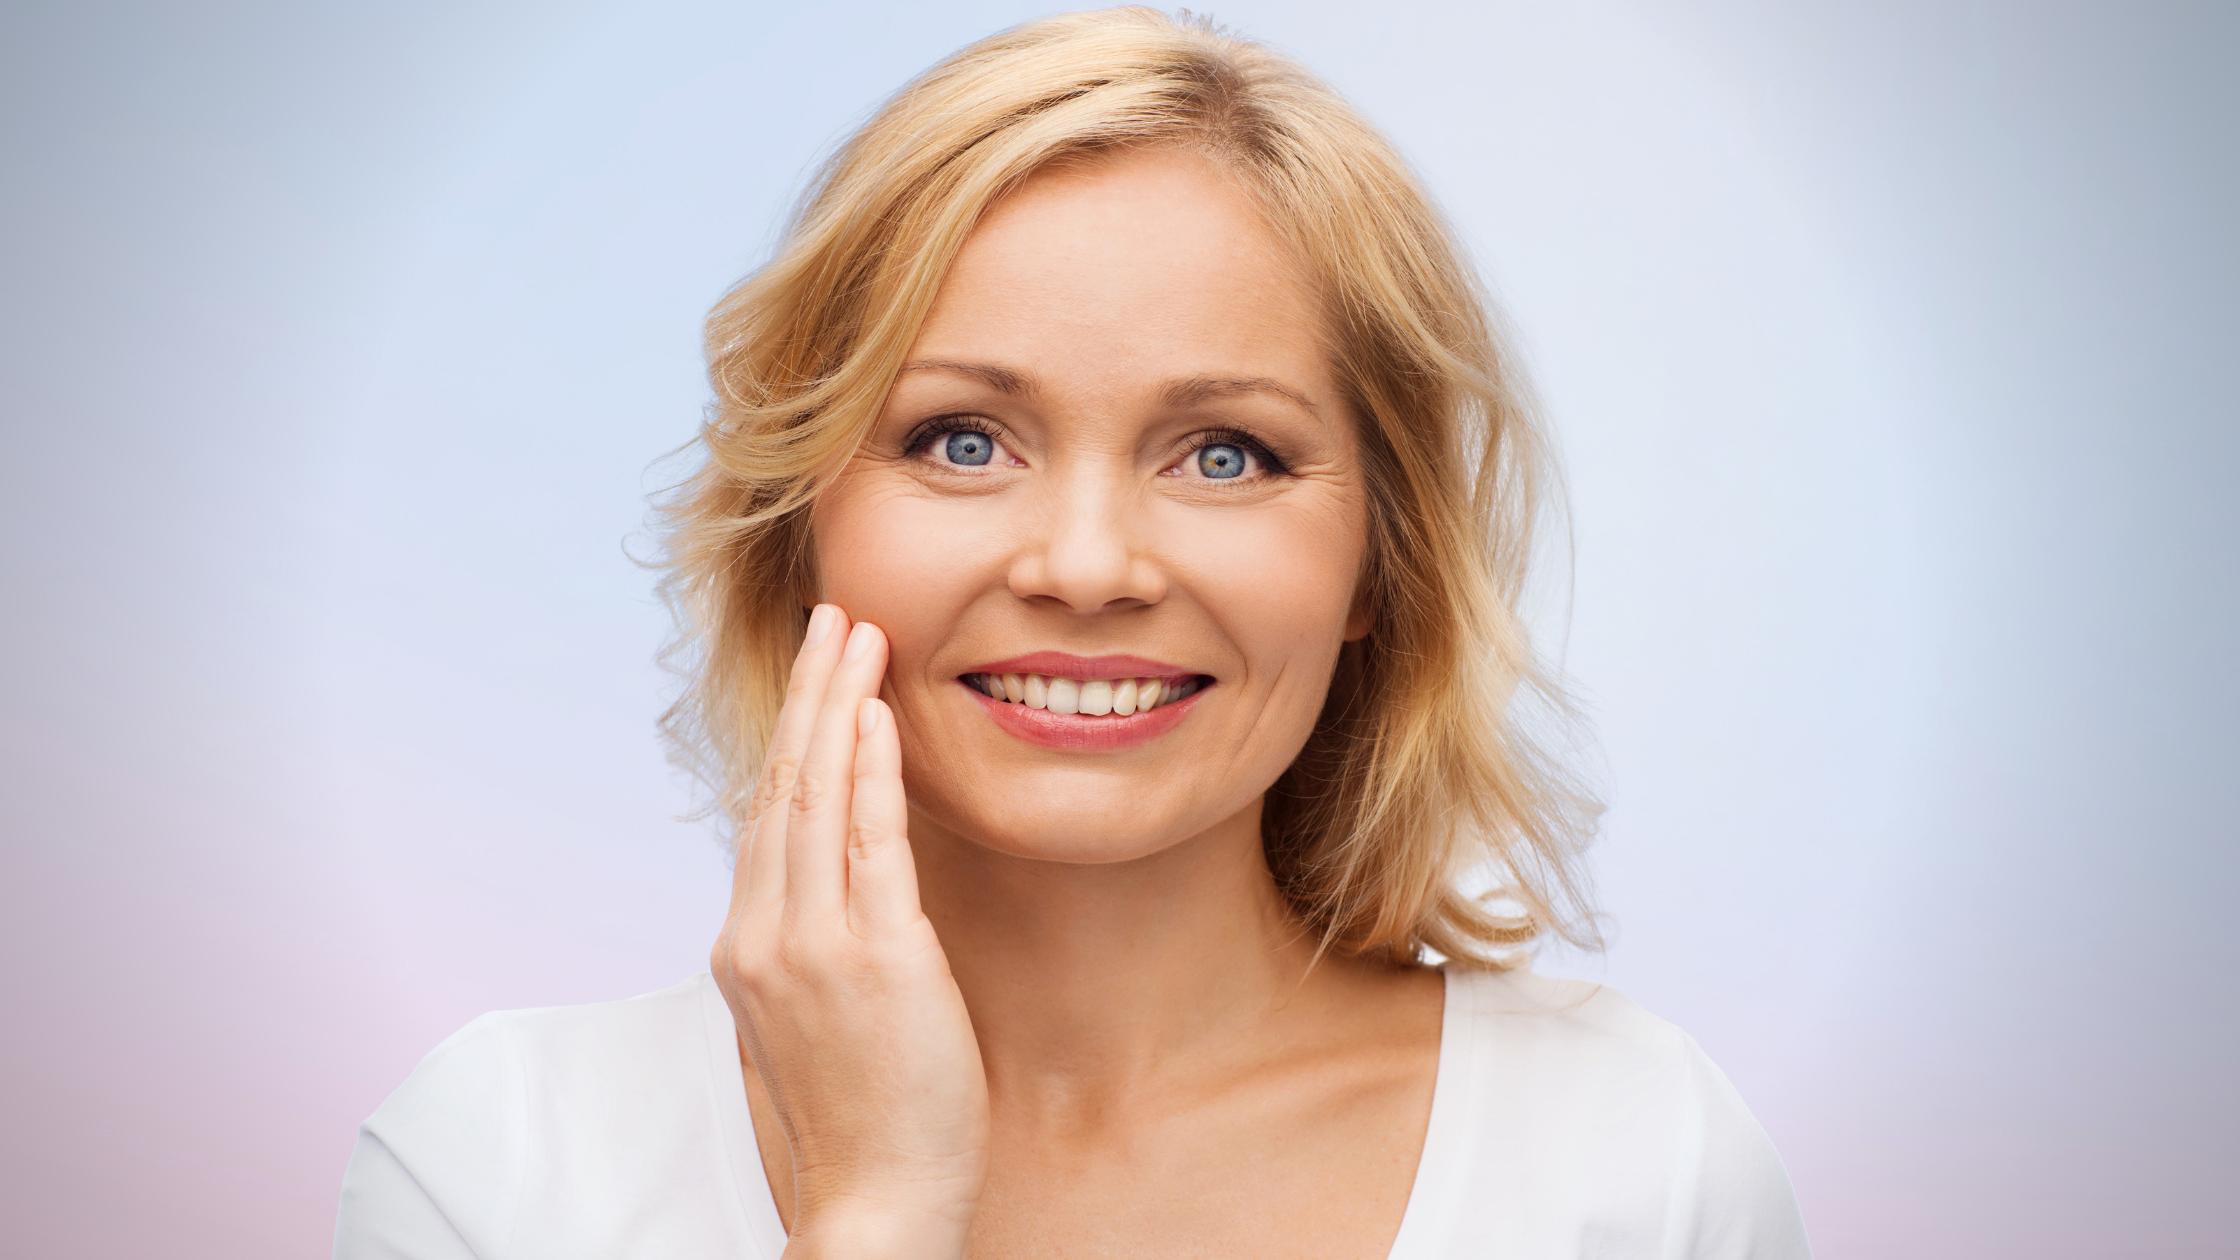 Aesthetic Procedures At Yew Tree Dental Care